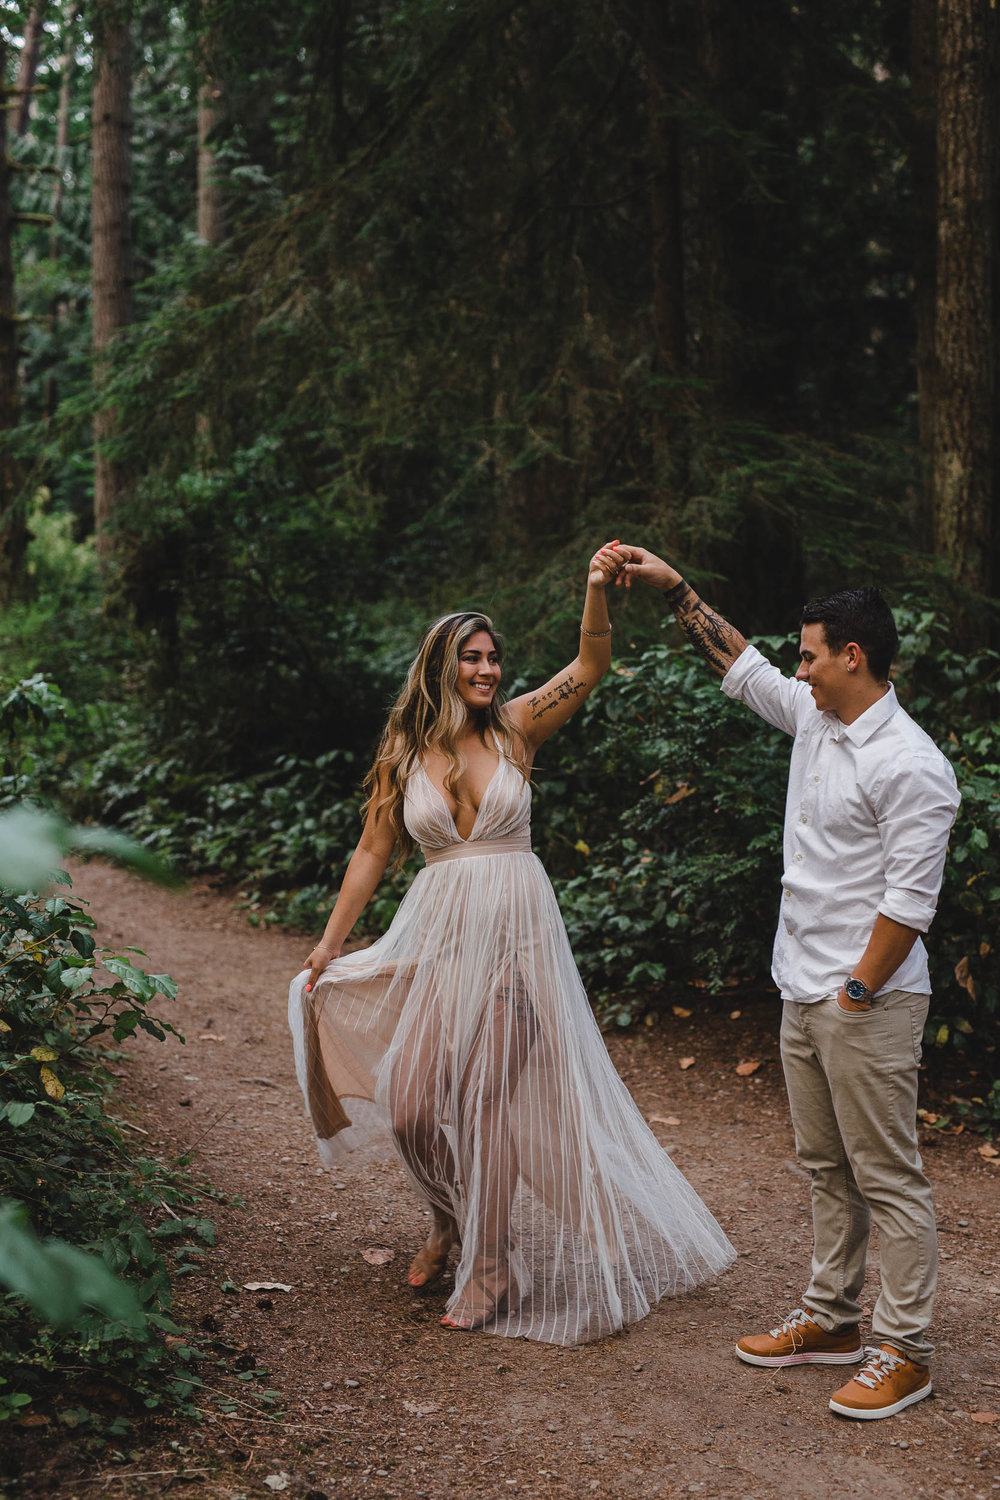 Bainbridge-Island-Elopement-KyleLovesTori-25.jpg